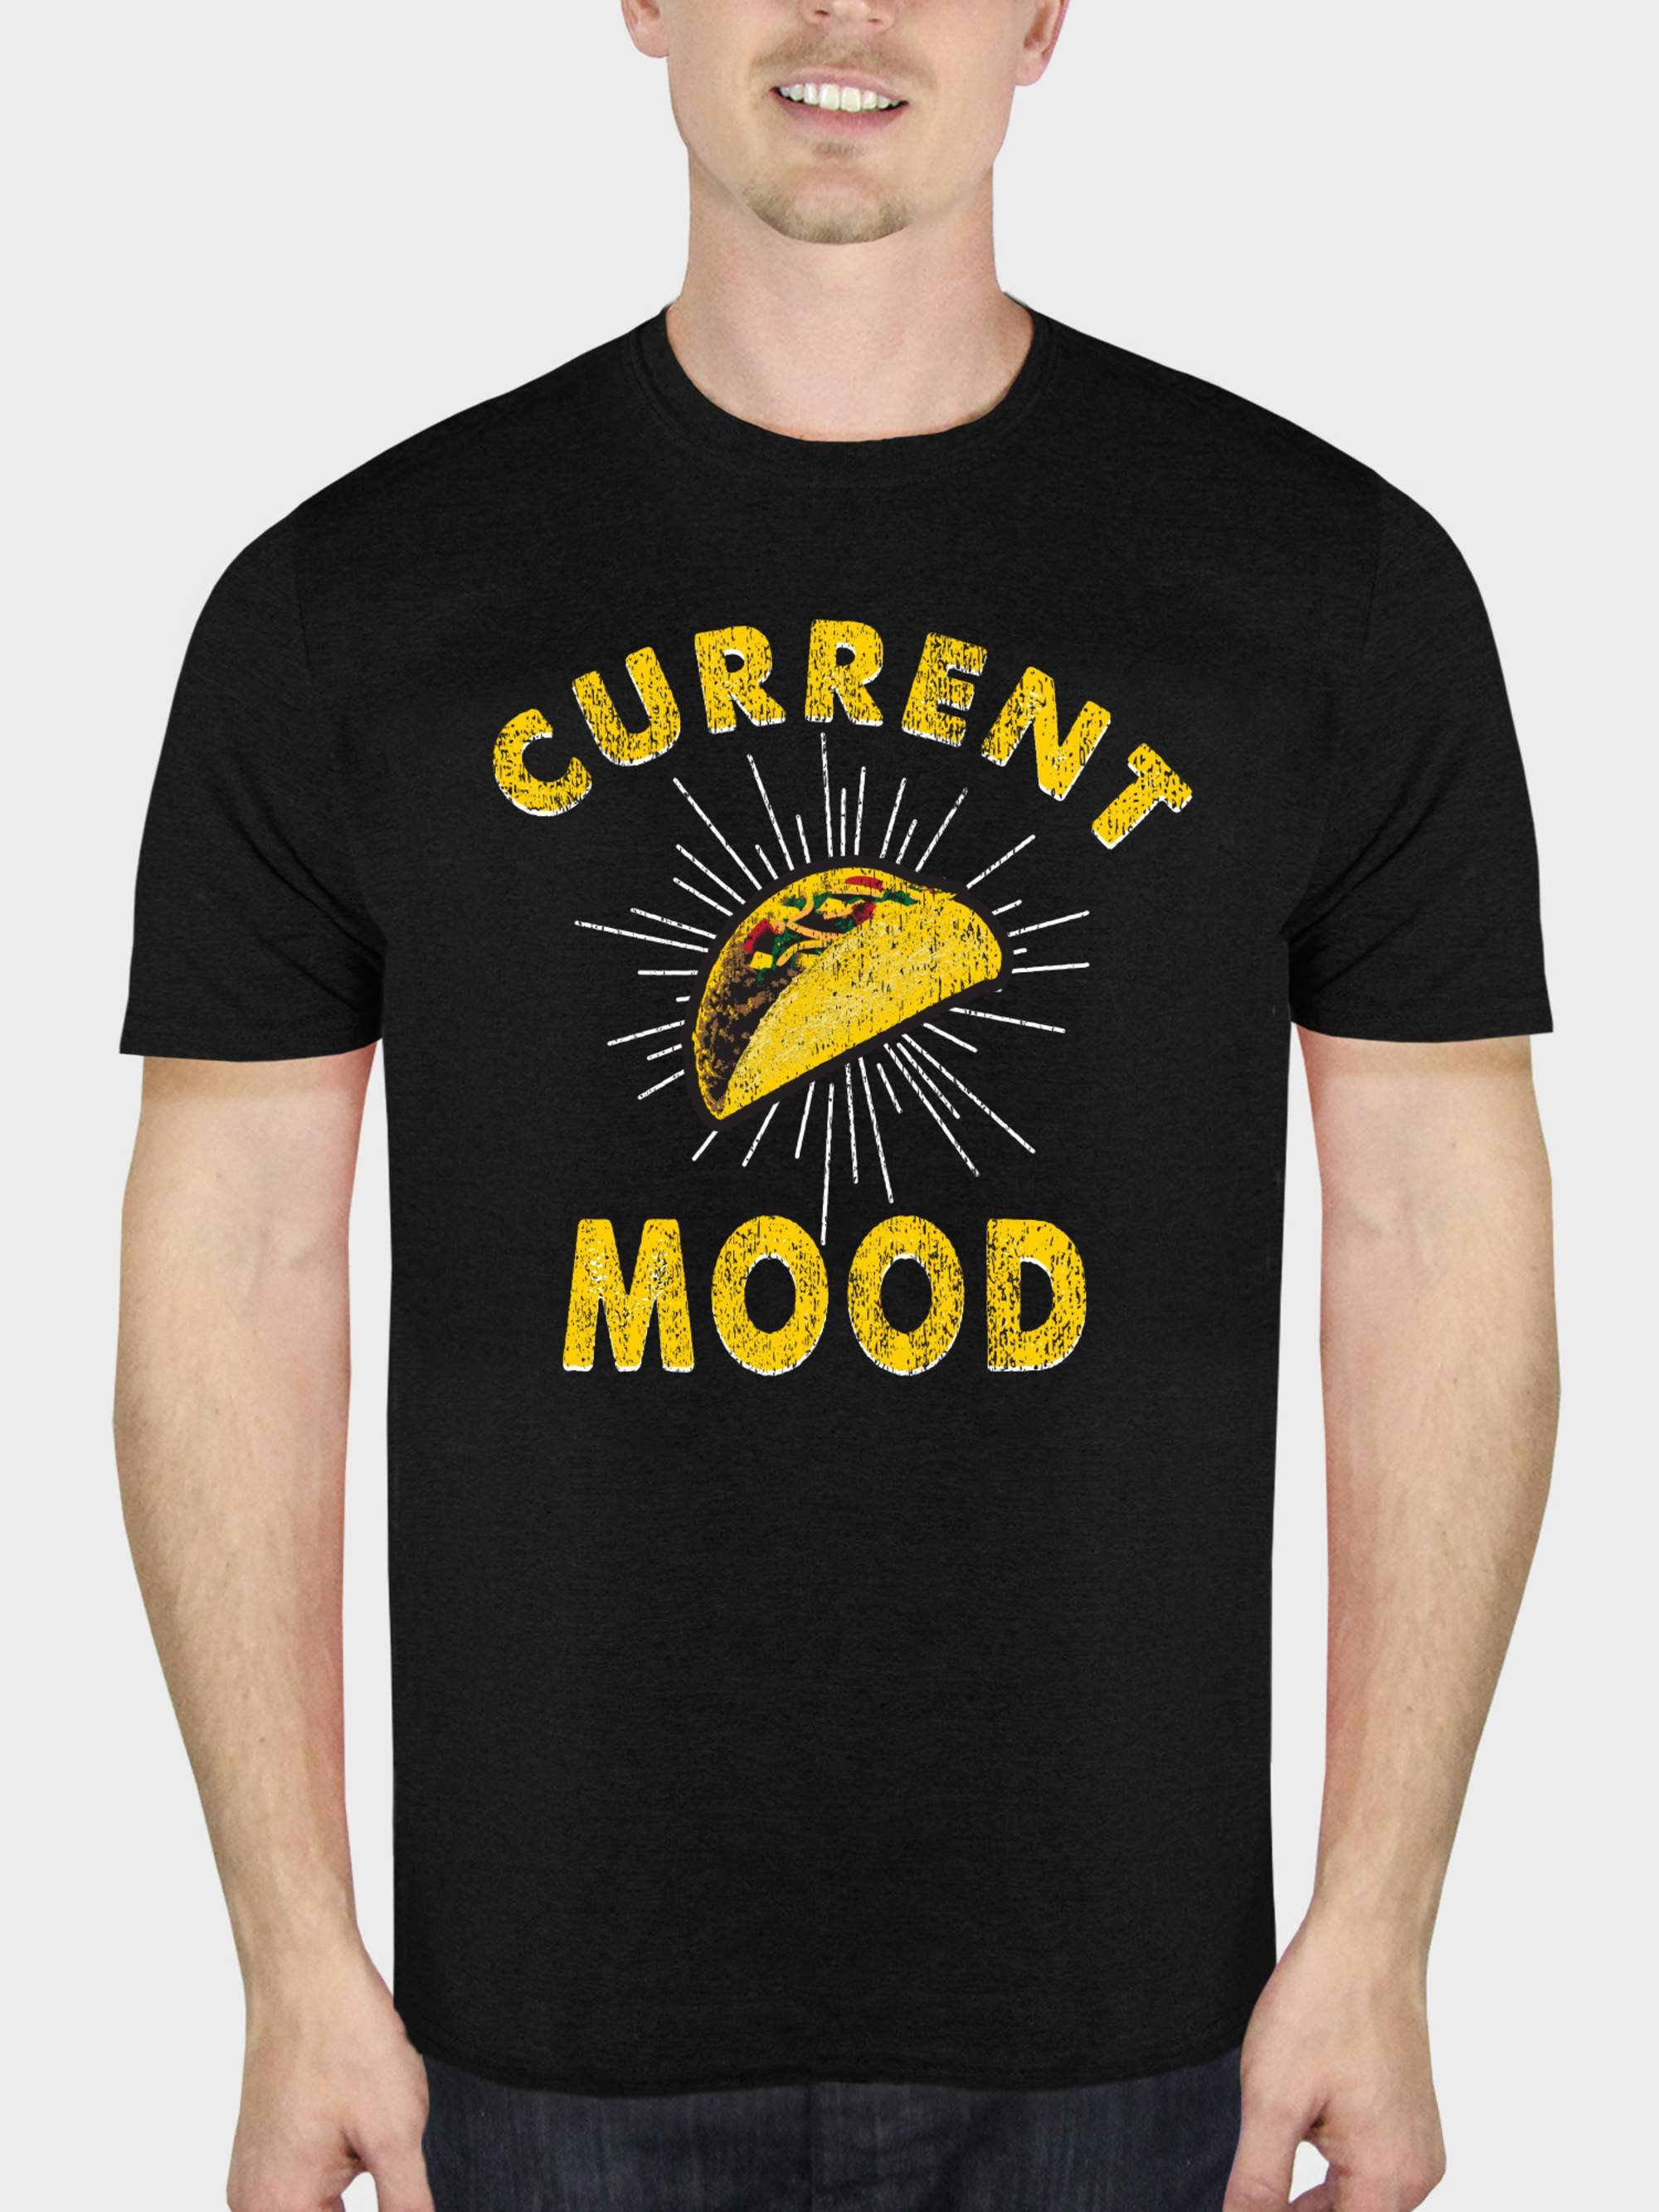 Taco Mood Funny Attitude Men's Black Graphic T-Shirt, up to Size 5XL